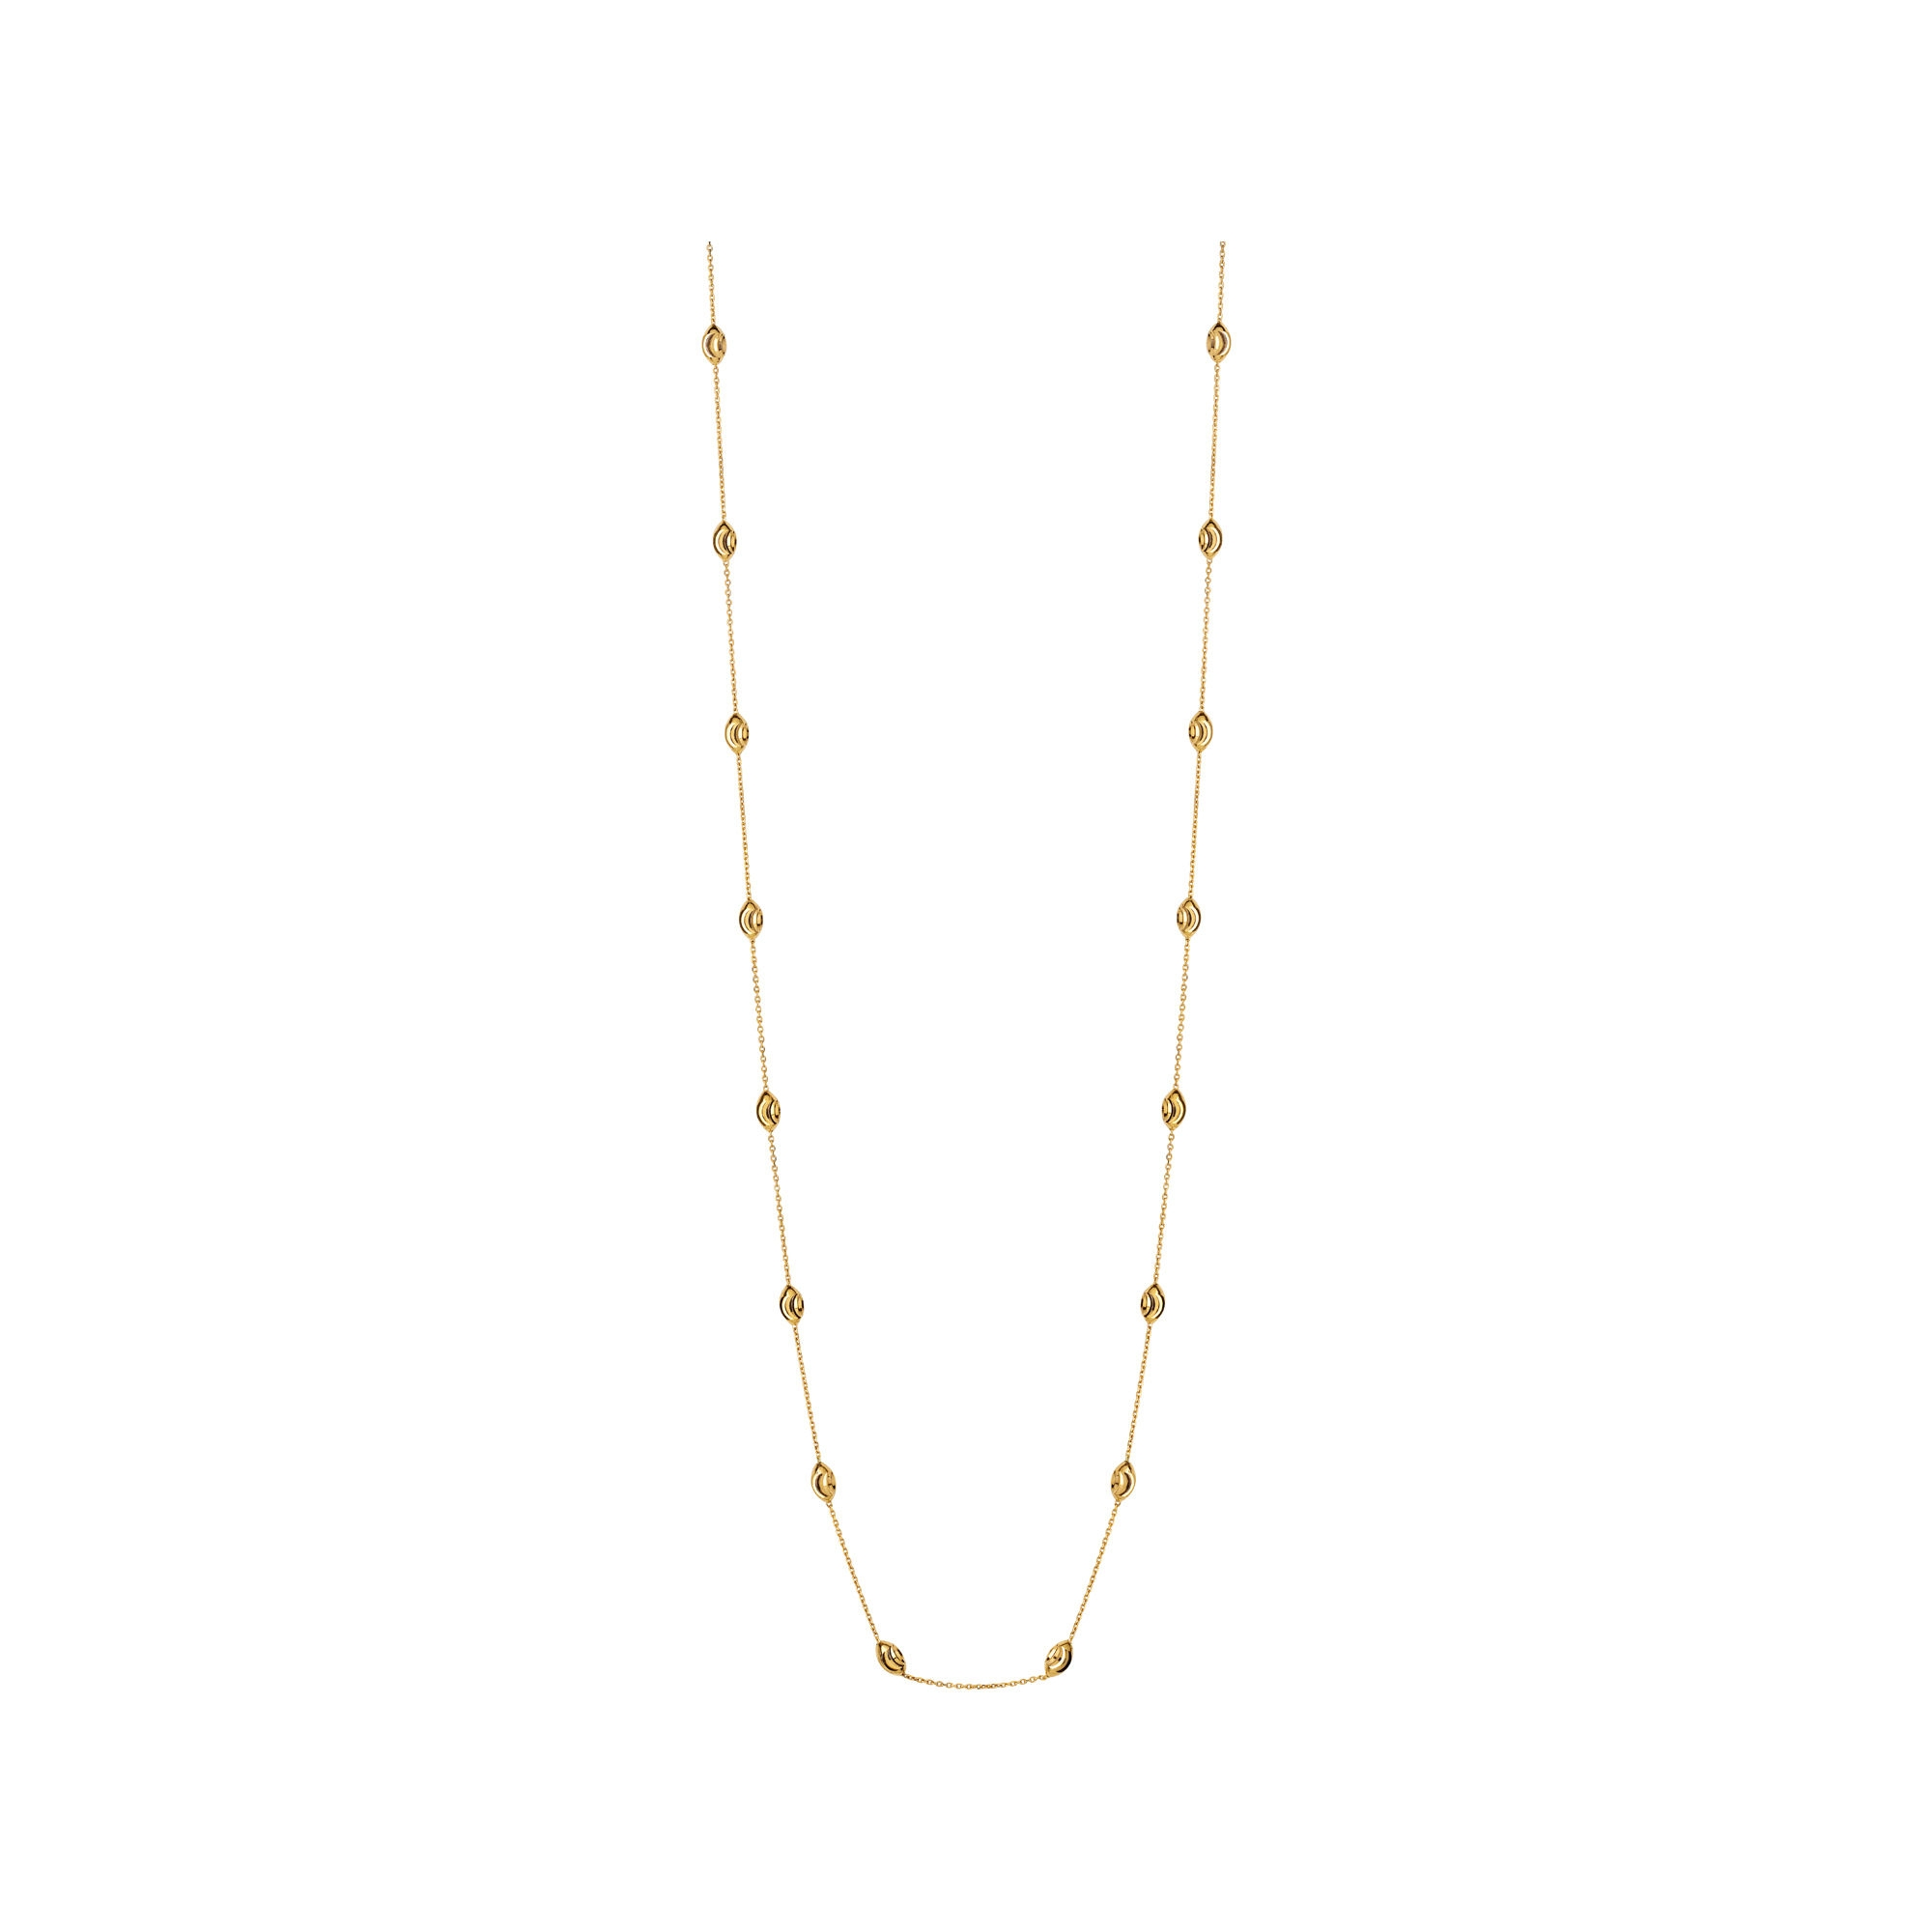 Links of London Essentials 18kt Yellow Gold Vermeil Beaded Chain Necklace 80cm-0